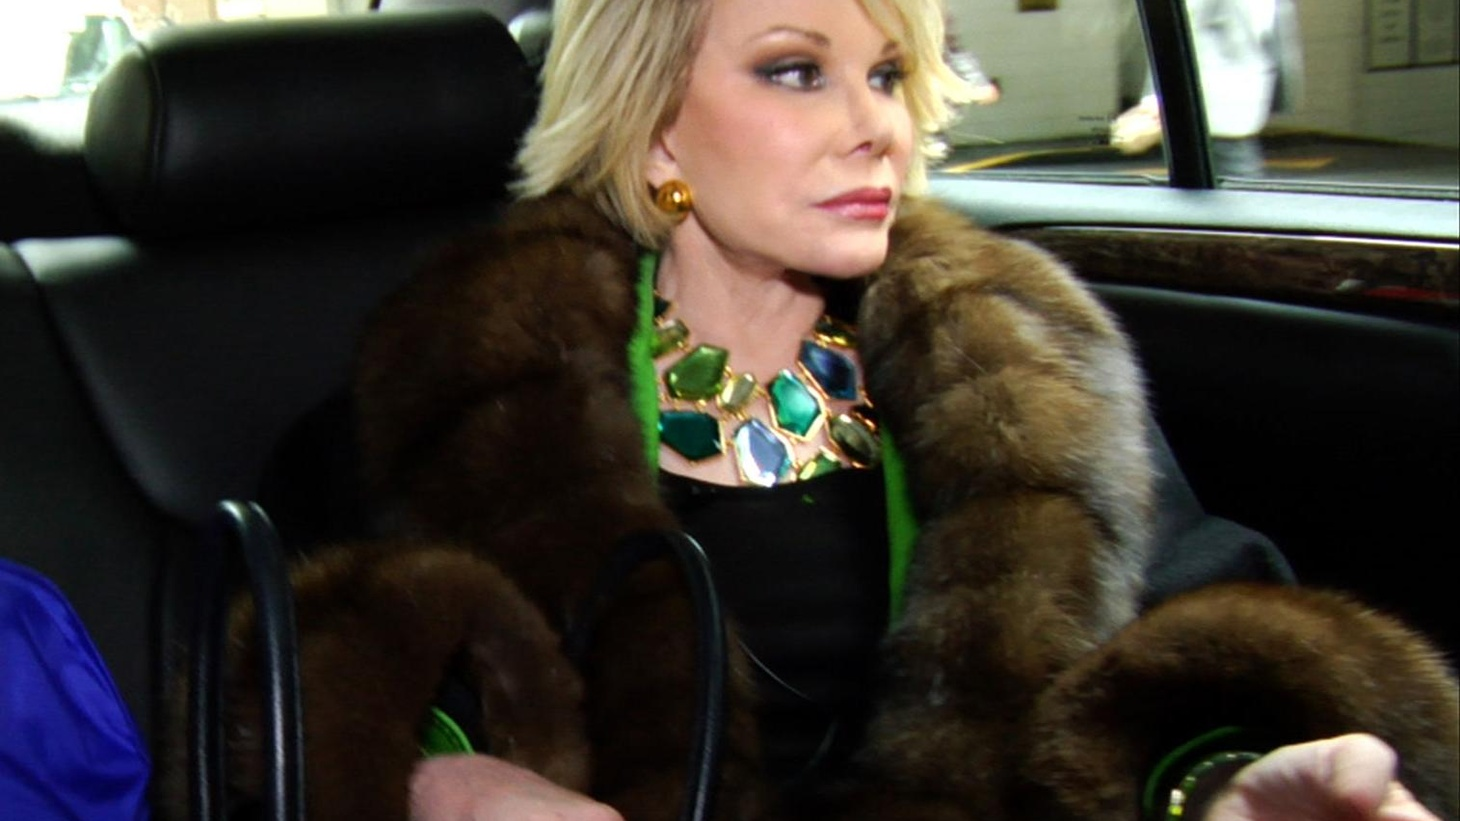 Joan Rivers may be best known for her off-color humor, working the red carpet, and her love of plastic surgery.  But in the new documentary, Joan Rivers: A Piece of Work, filmmakers Annie Sundberg and Ricki Stern reveal a woman who is an amazingly resilient industry pro, so committed to work that she won't let up even at the age of 77.